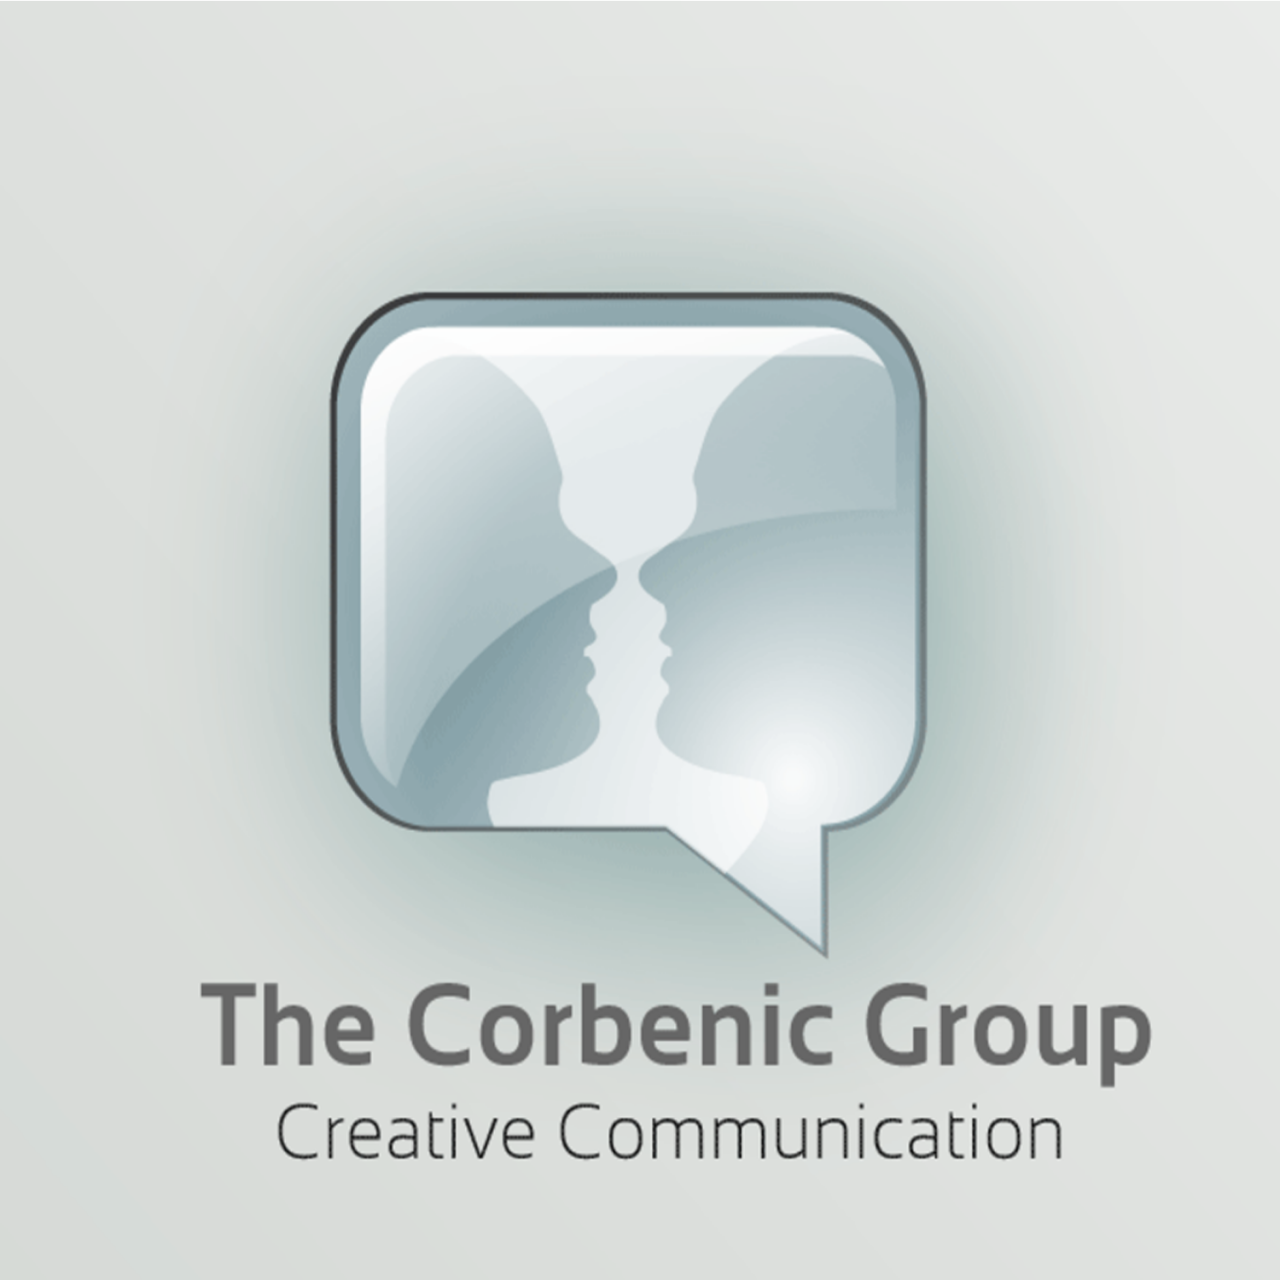 The Corbenic Group